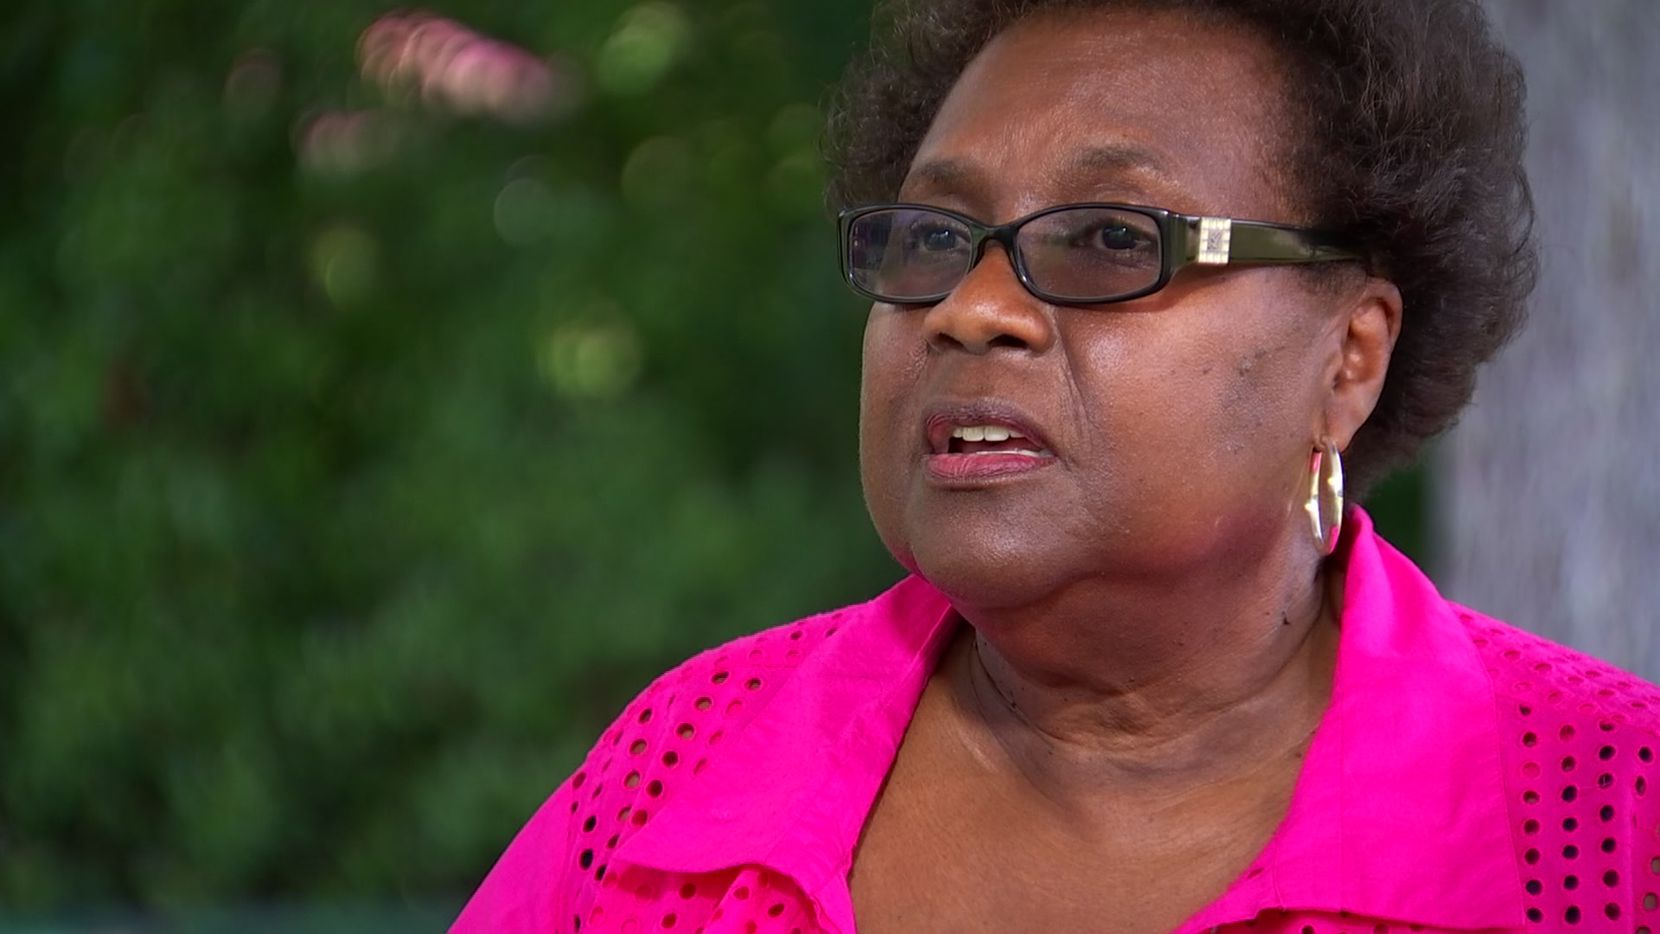 James Byrd Jr.'s sister, Clara Byrd Taylor, talks about the impact of his murder.